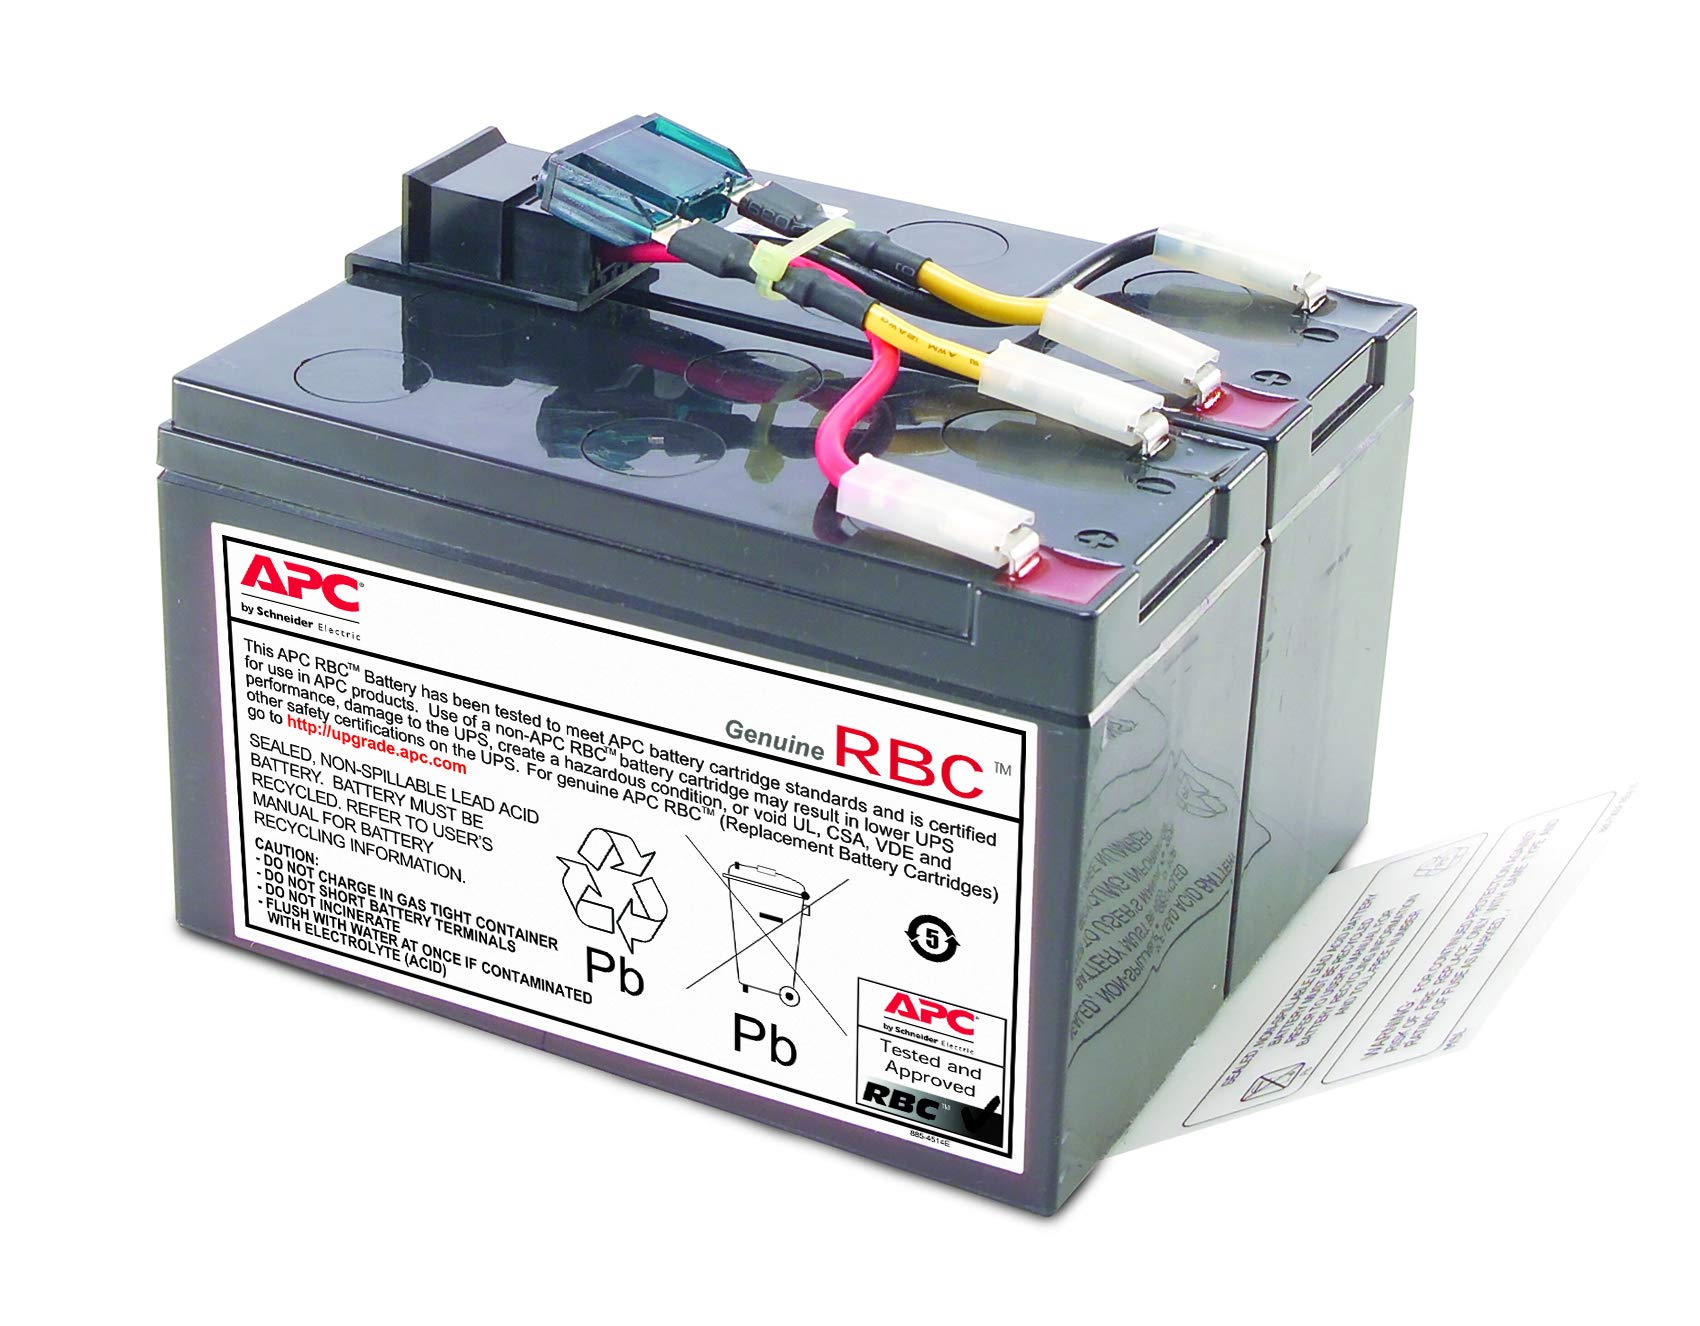 APC UPS Battery Replacement for APC UPS Models SMT750, SMT750US, SUA750 and Select Others (RBC48) by APC (Image #1)